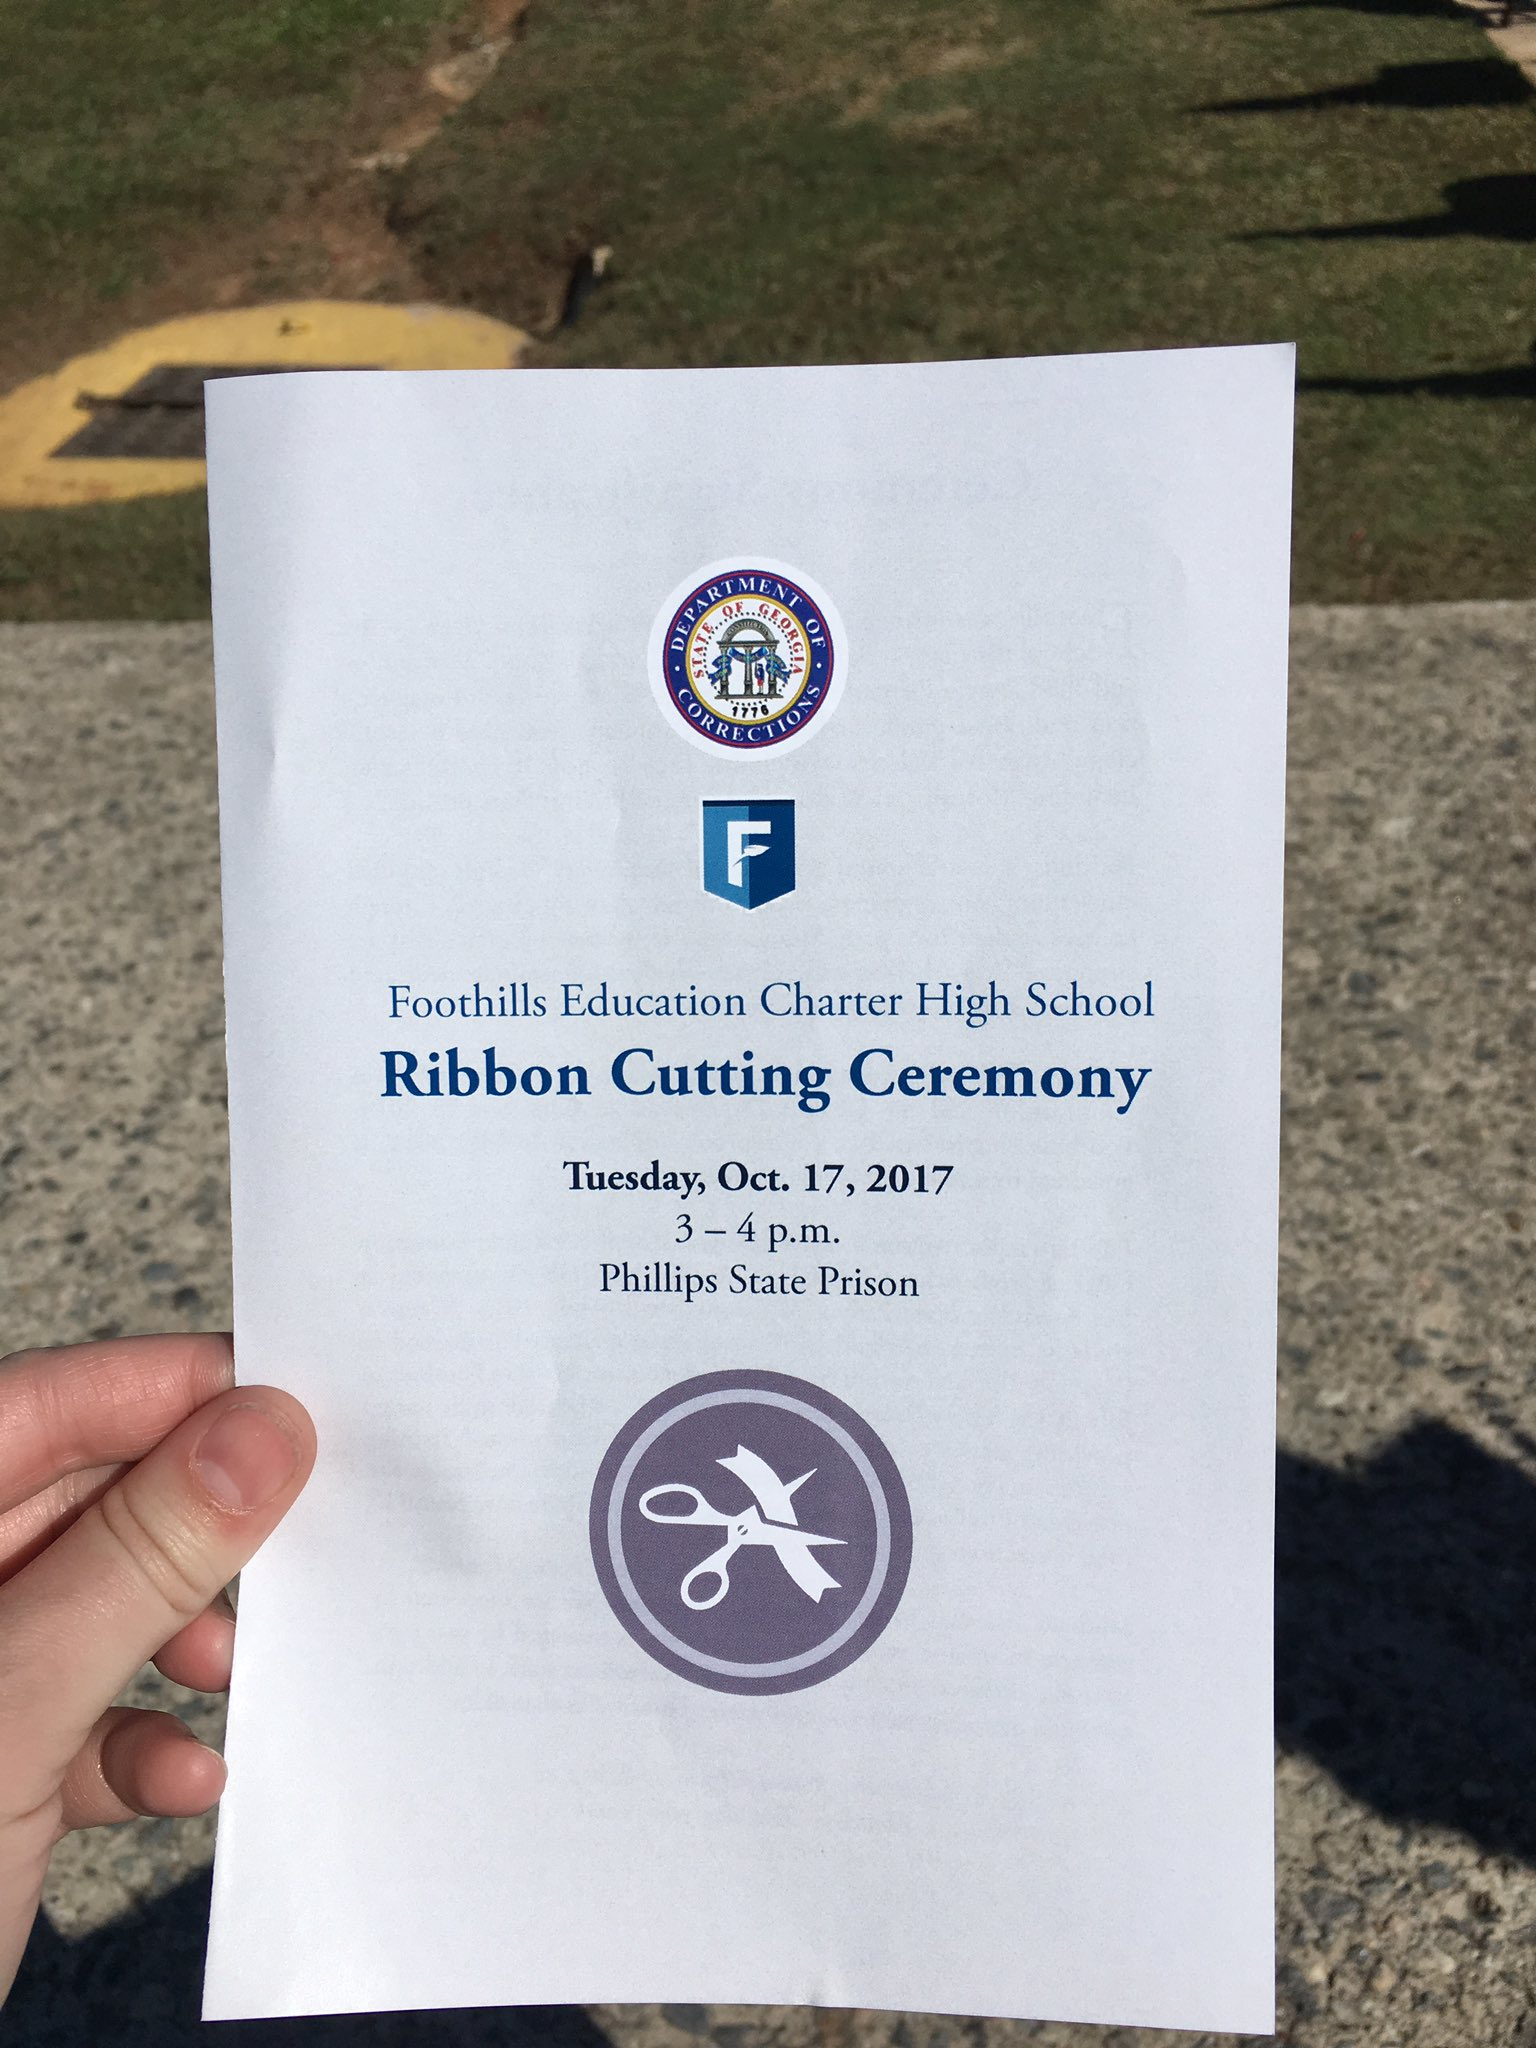 Phillips State Prison hosts Foothills Education Charter High School Ribbon Cutting @ASCALeadership @GovernorDeal @GAFirstLady @WeAreRALLY https://t.co/1Bb36hEM6W